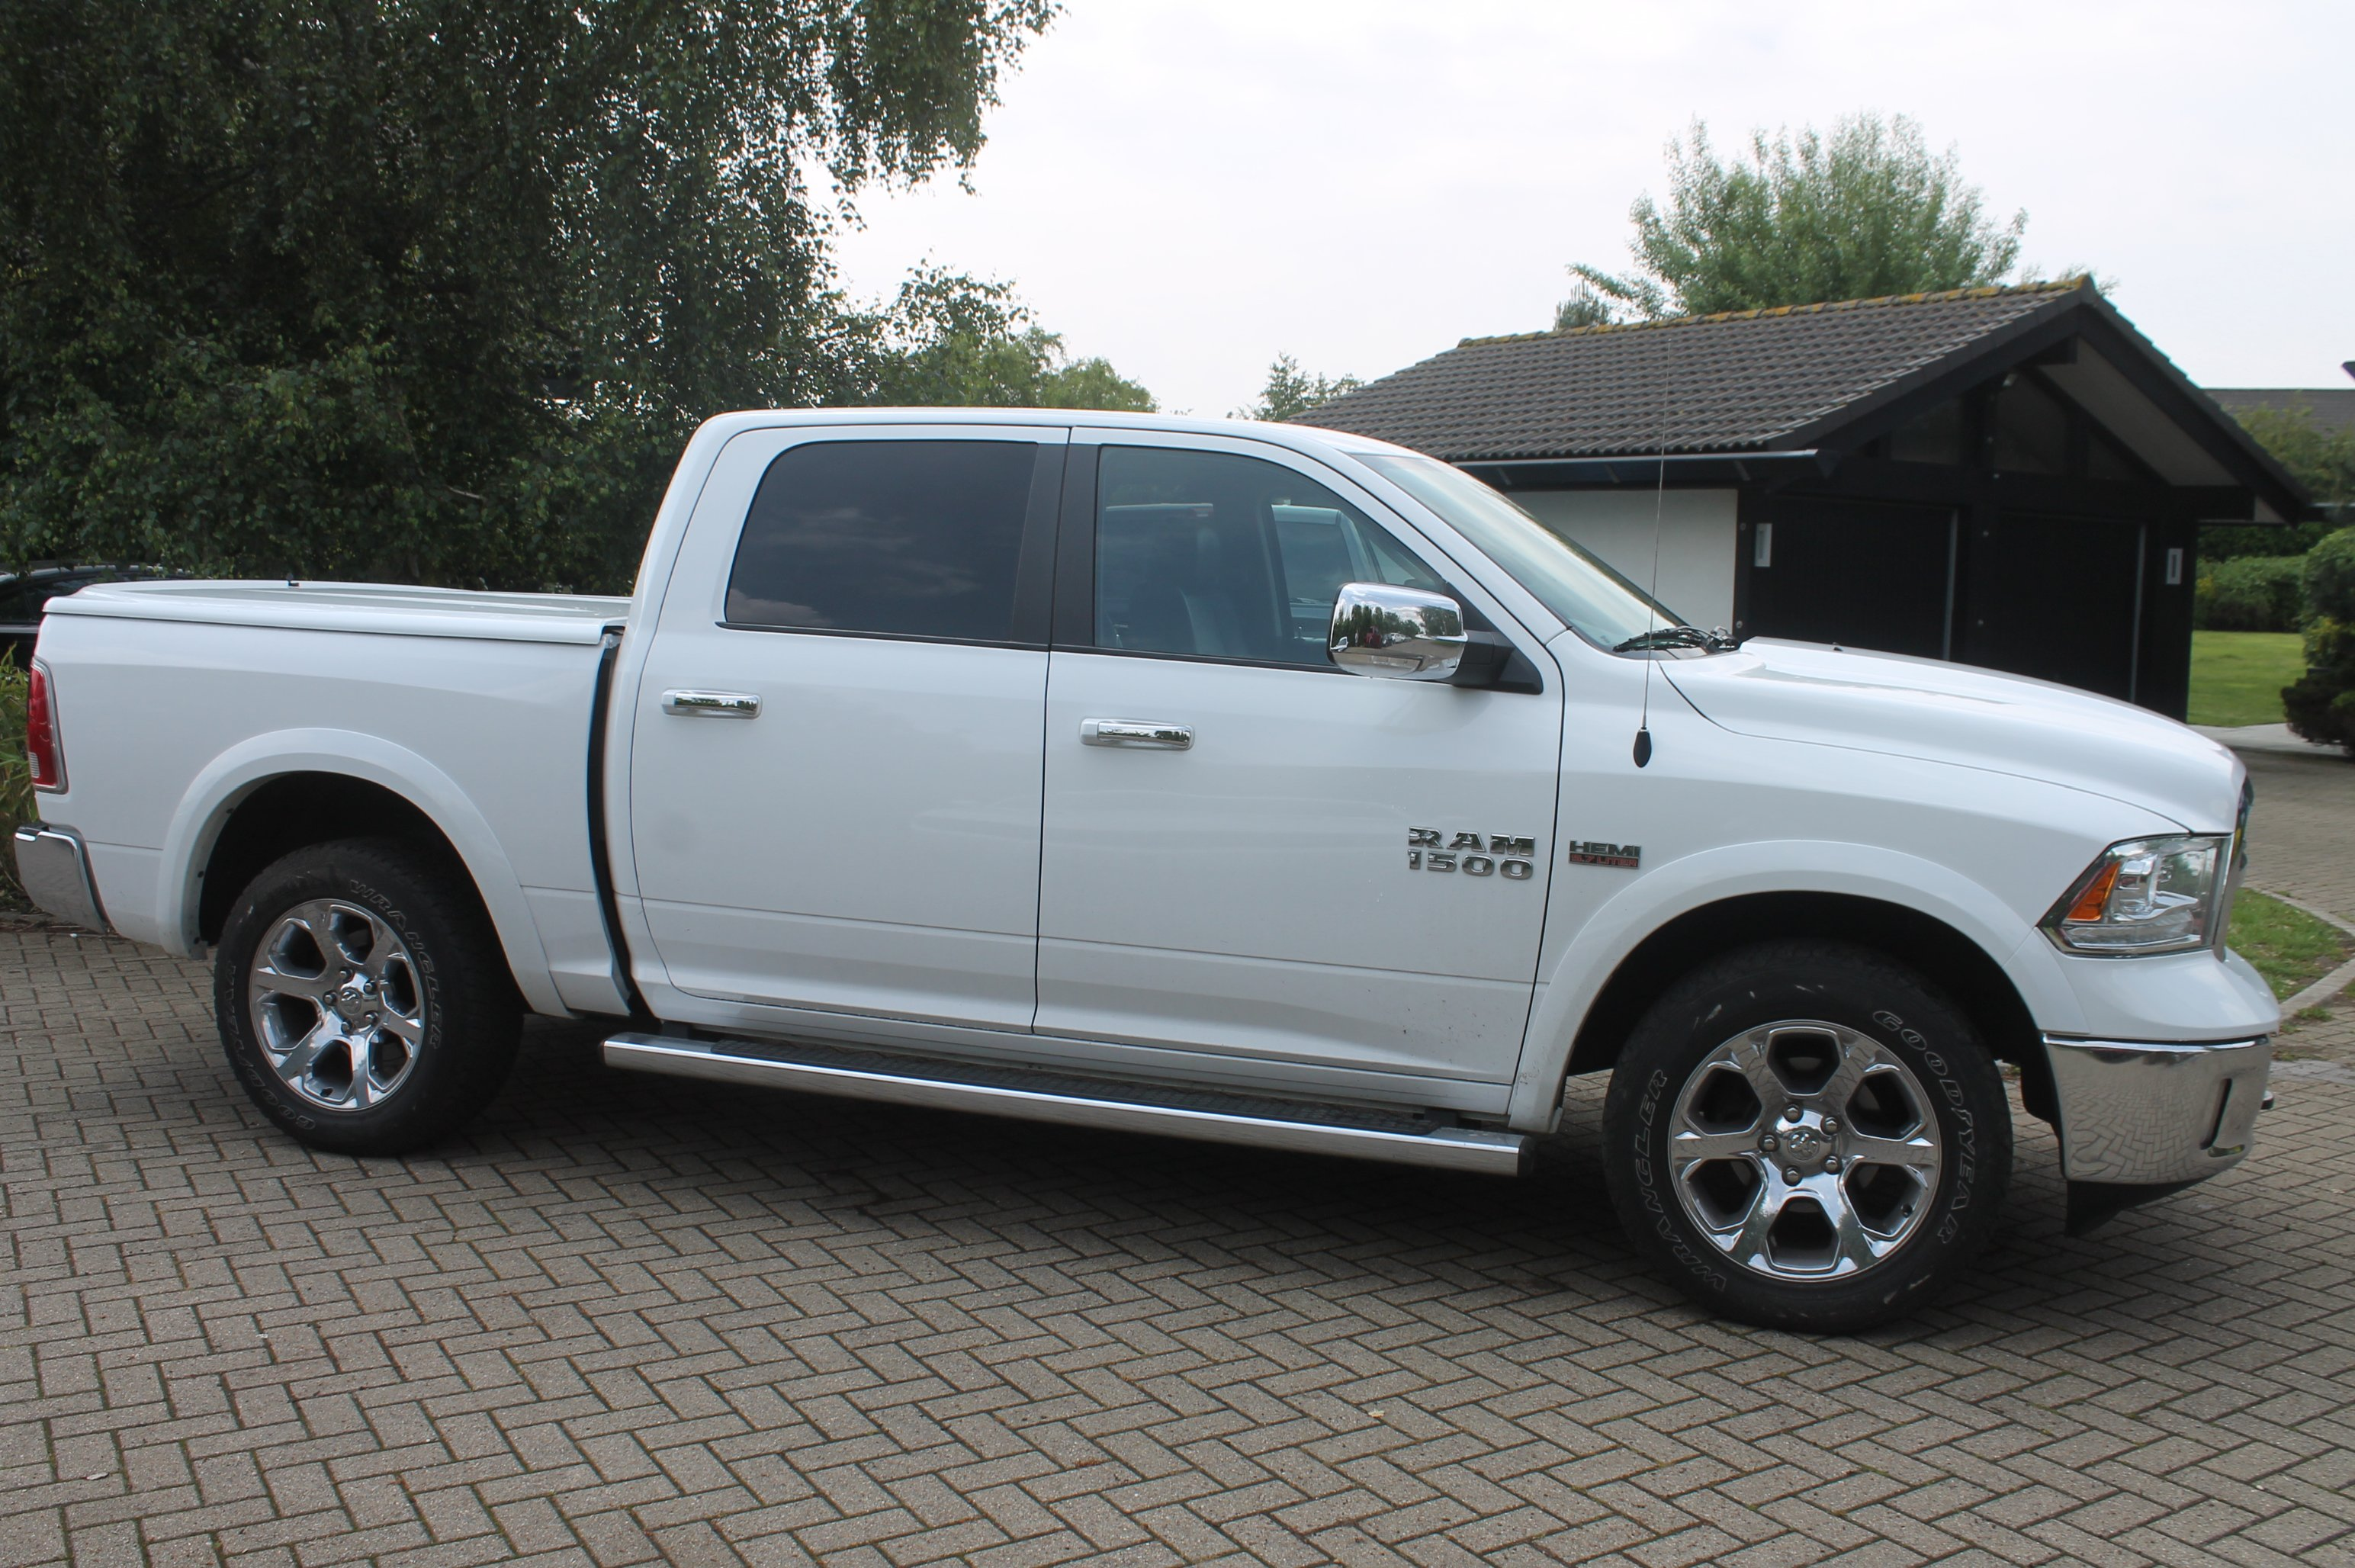 2013 dodge ram 1500 crew cab laramie prins lpg 51st state autos. Black Bedroom Furniture Sets. Home Design Ideas